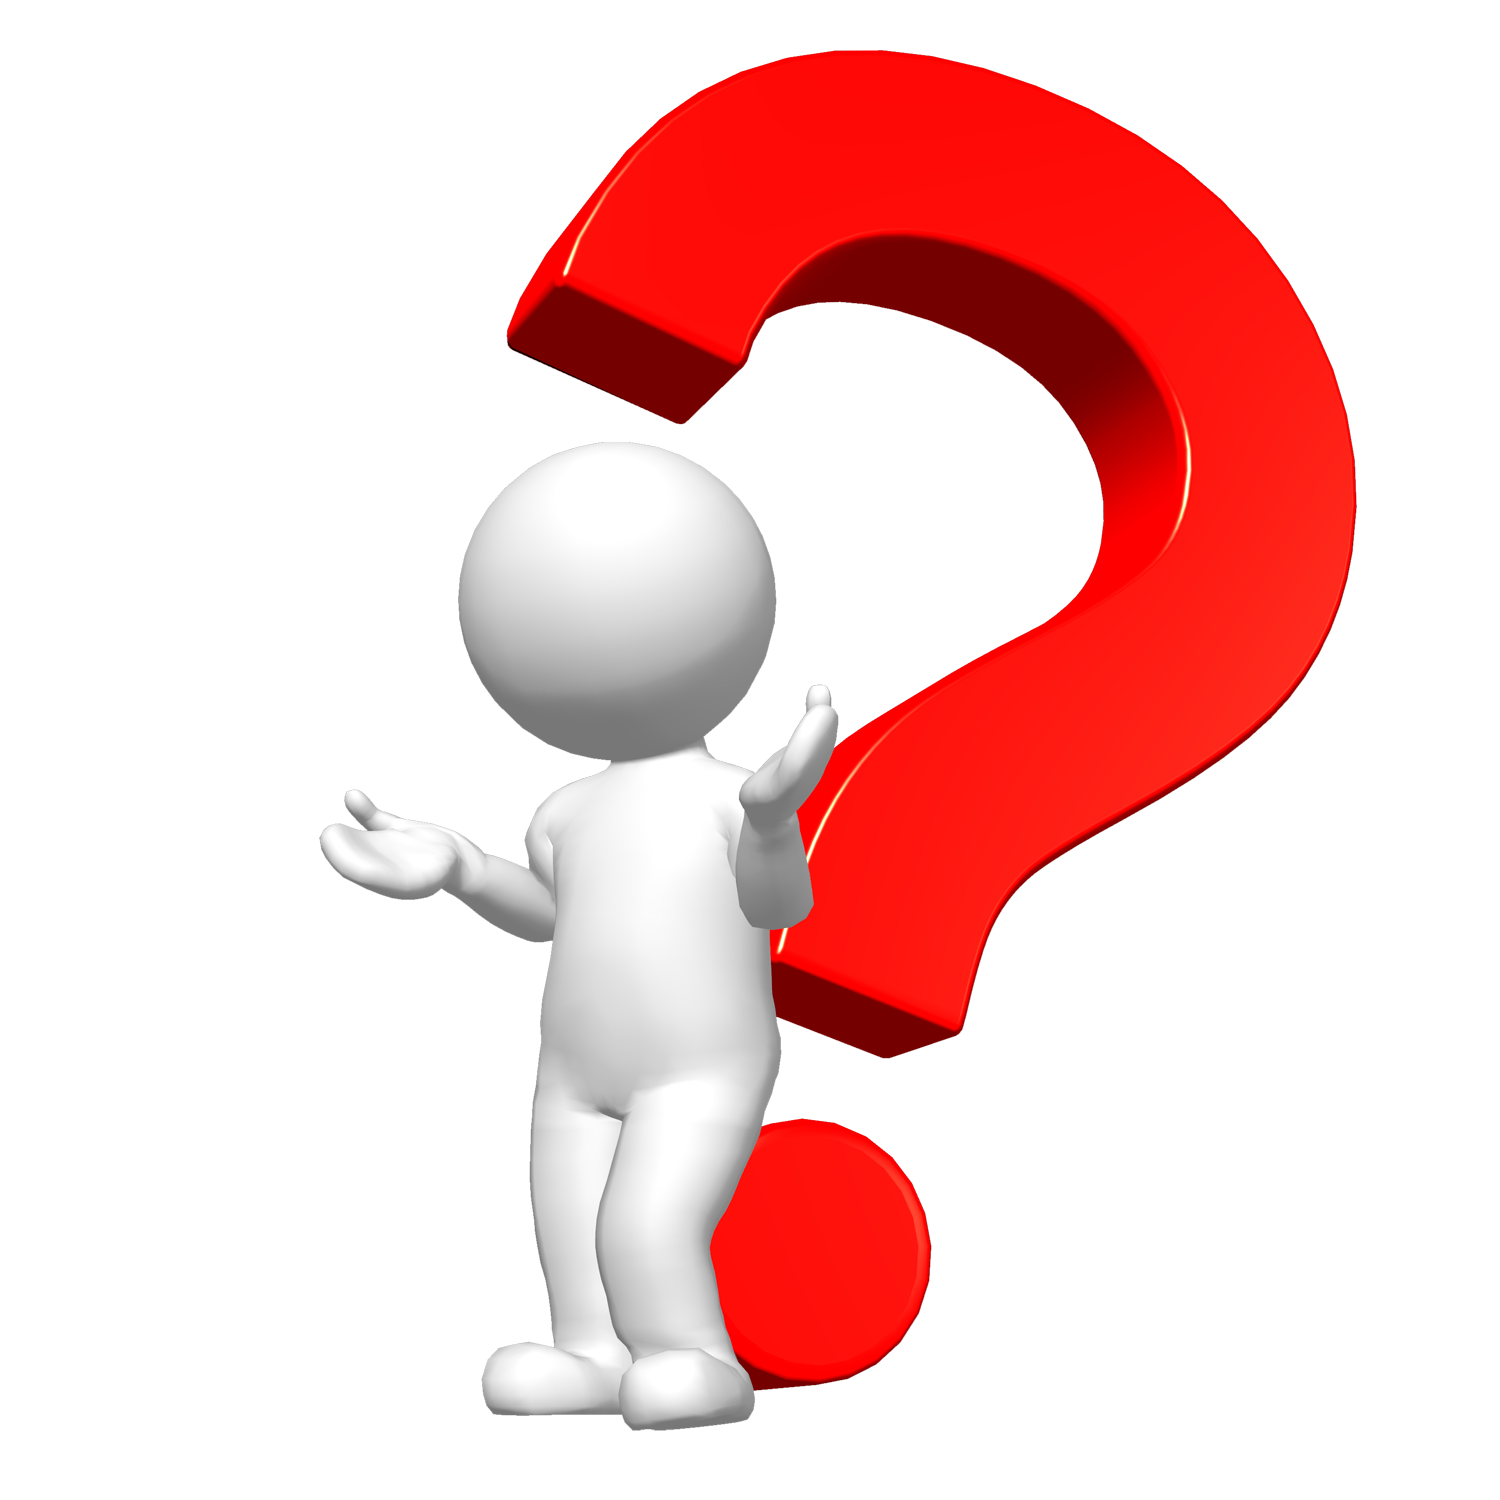 Any questions png. Question mark images free